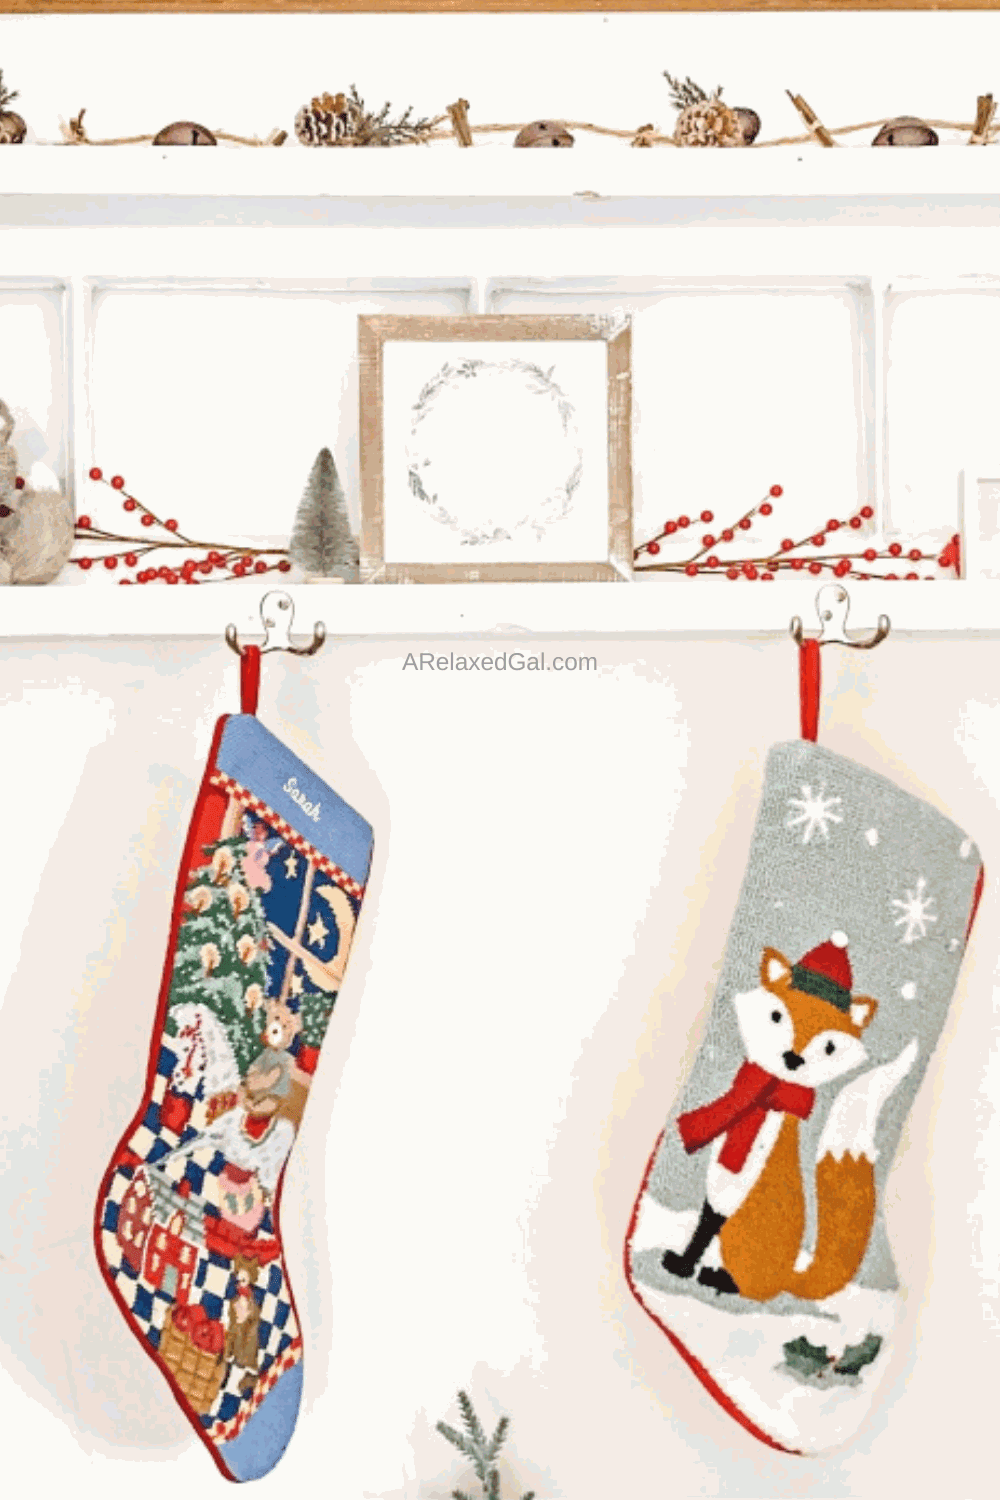 Best Stocking Stuffer Ideas From Amazon | A Relaxed Gal